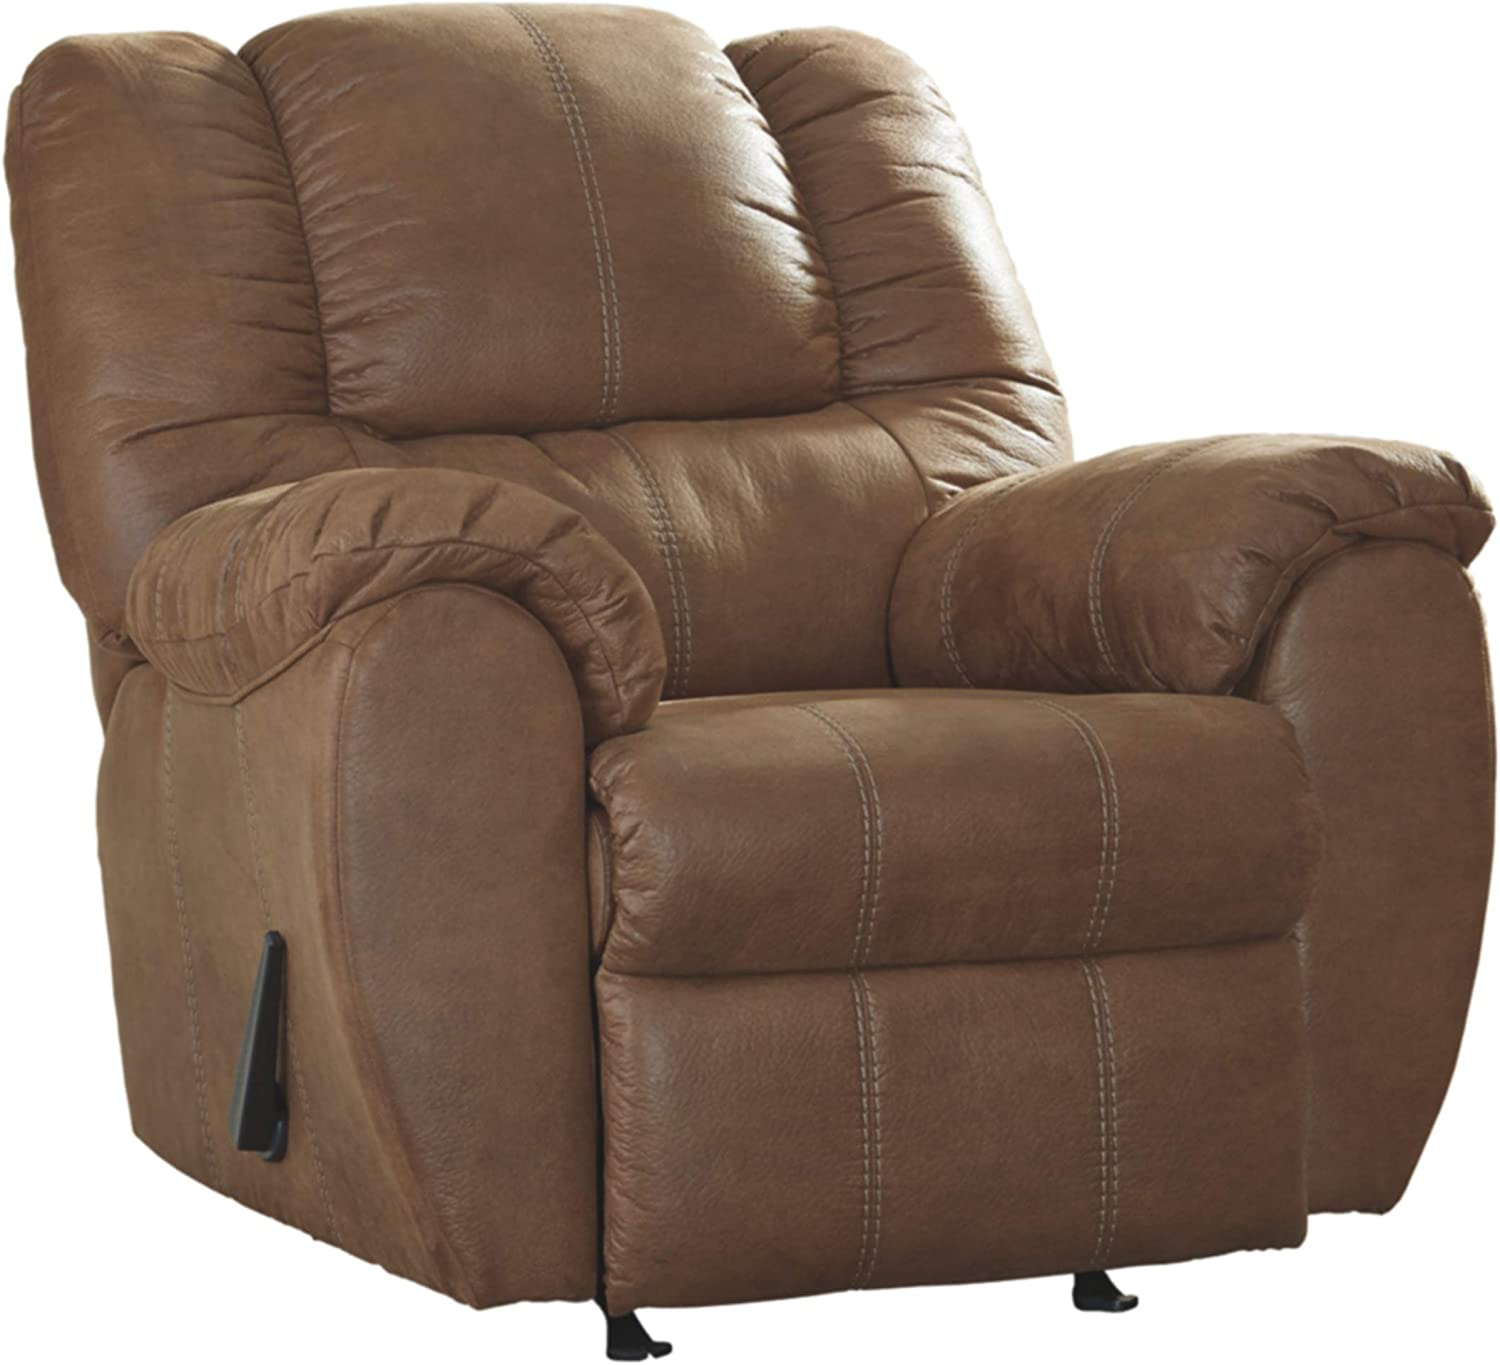 Signature Design by Ashley - McGann Contemporary Faux Leather Rocker Recliner - One Pull Reclining, Light Brown